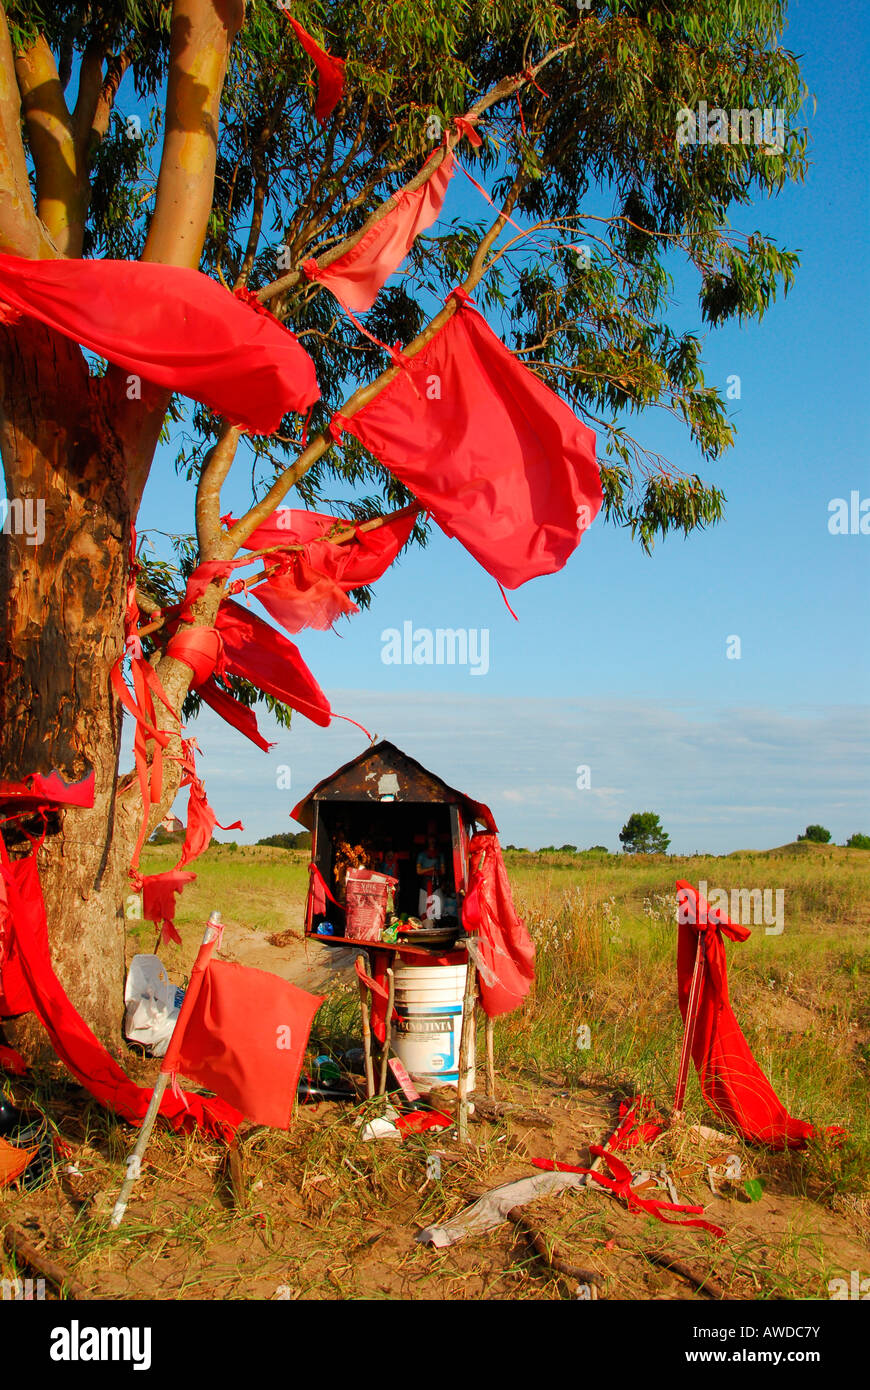 Memorial for Gauchito Gil (argentinian Robin Hood), near Mar Chiquita, Buenos Aires province, Argentina - Stock Image